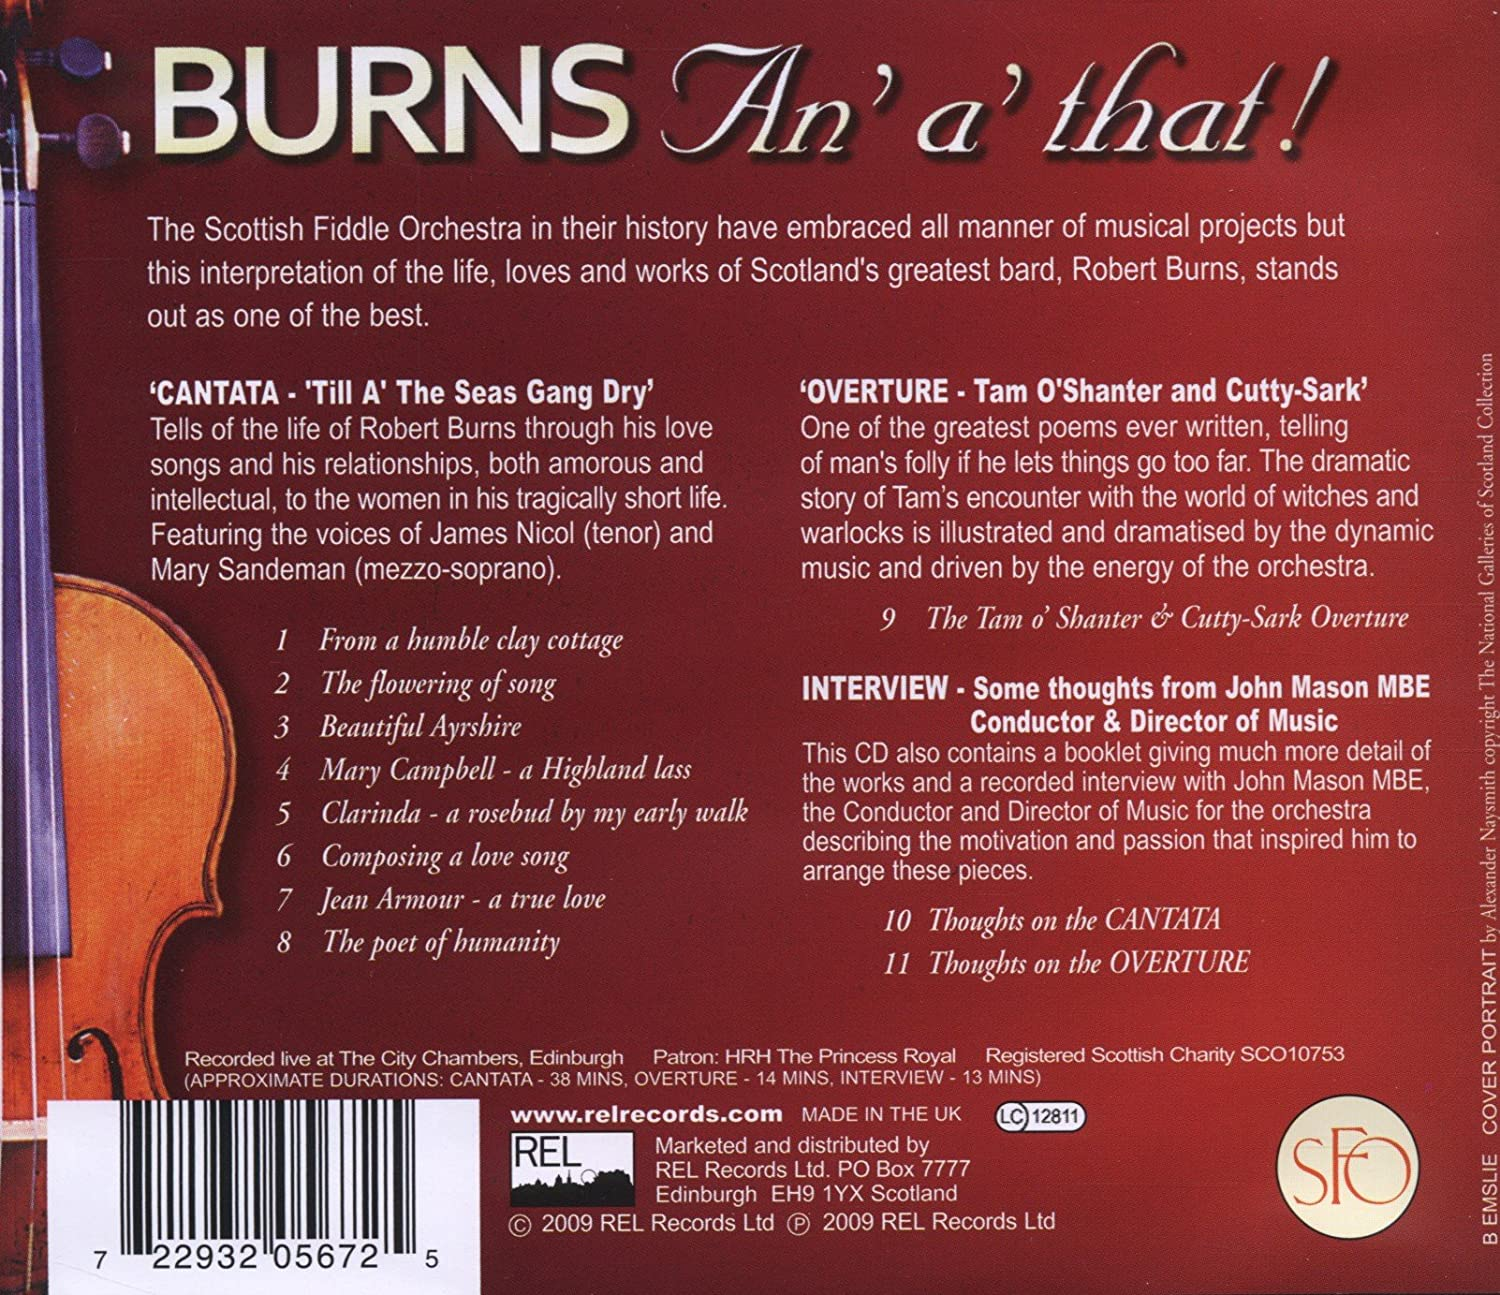 the Scottish Fiddle Orchestra - Burns An' A' That! - Amazon